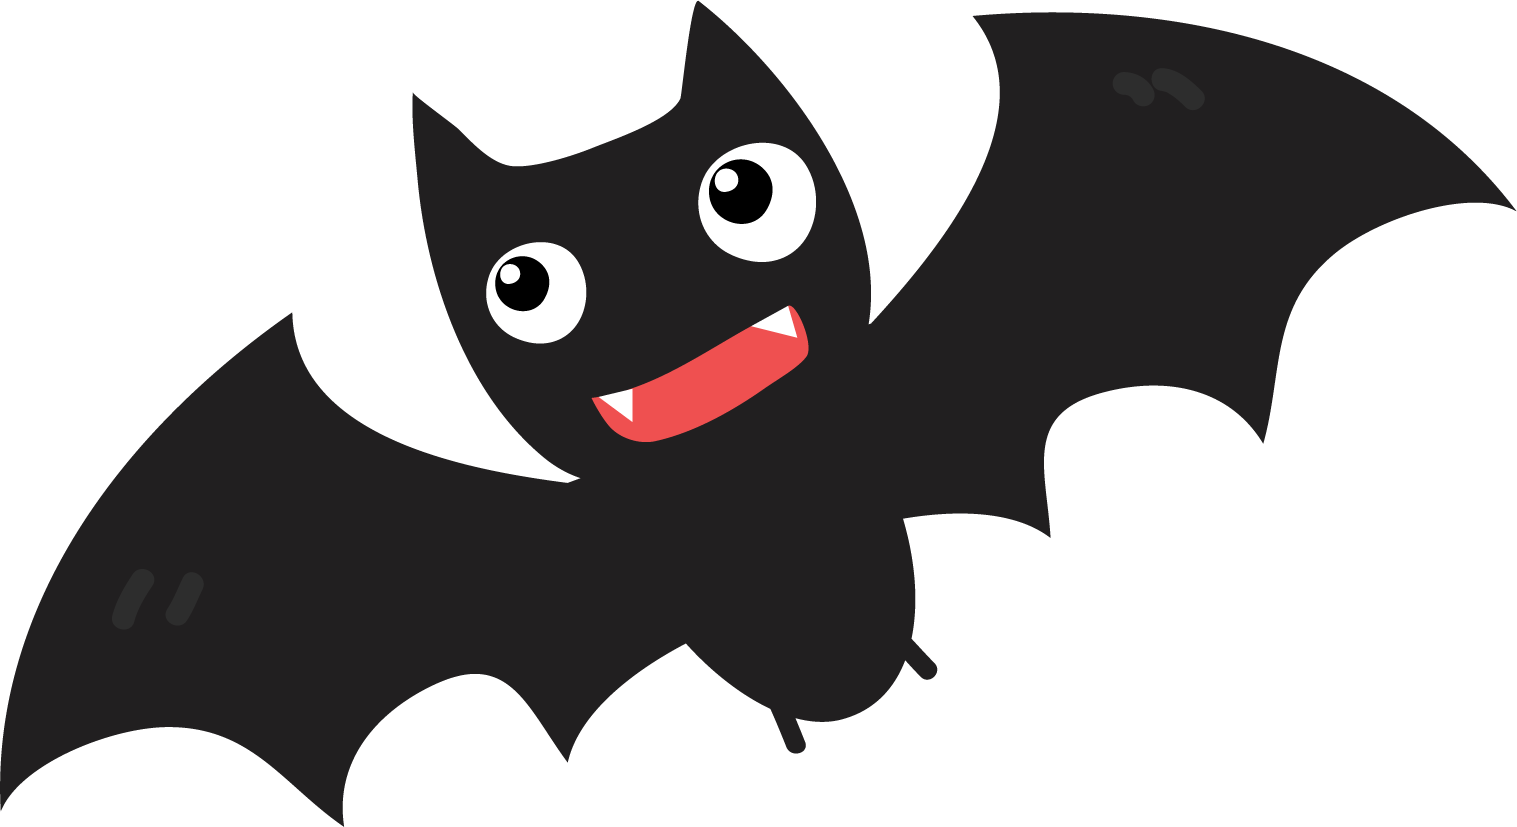 Clipart animals bat. Png transparent free images